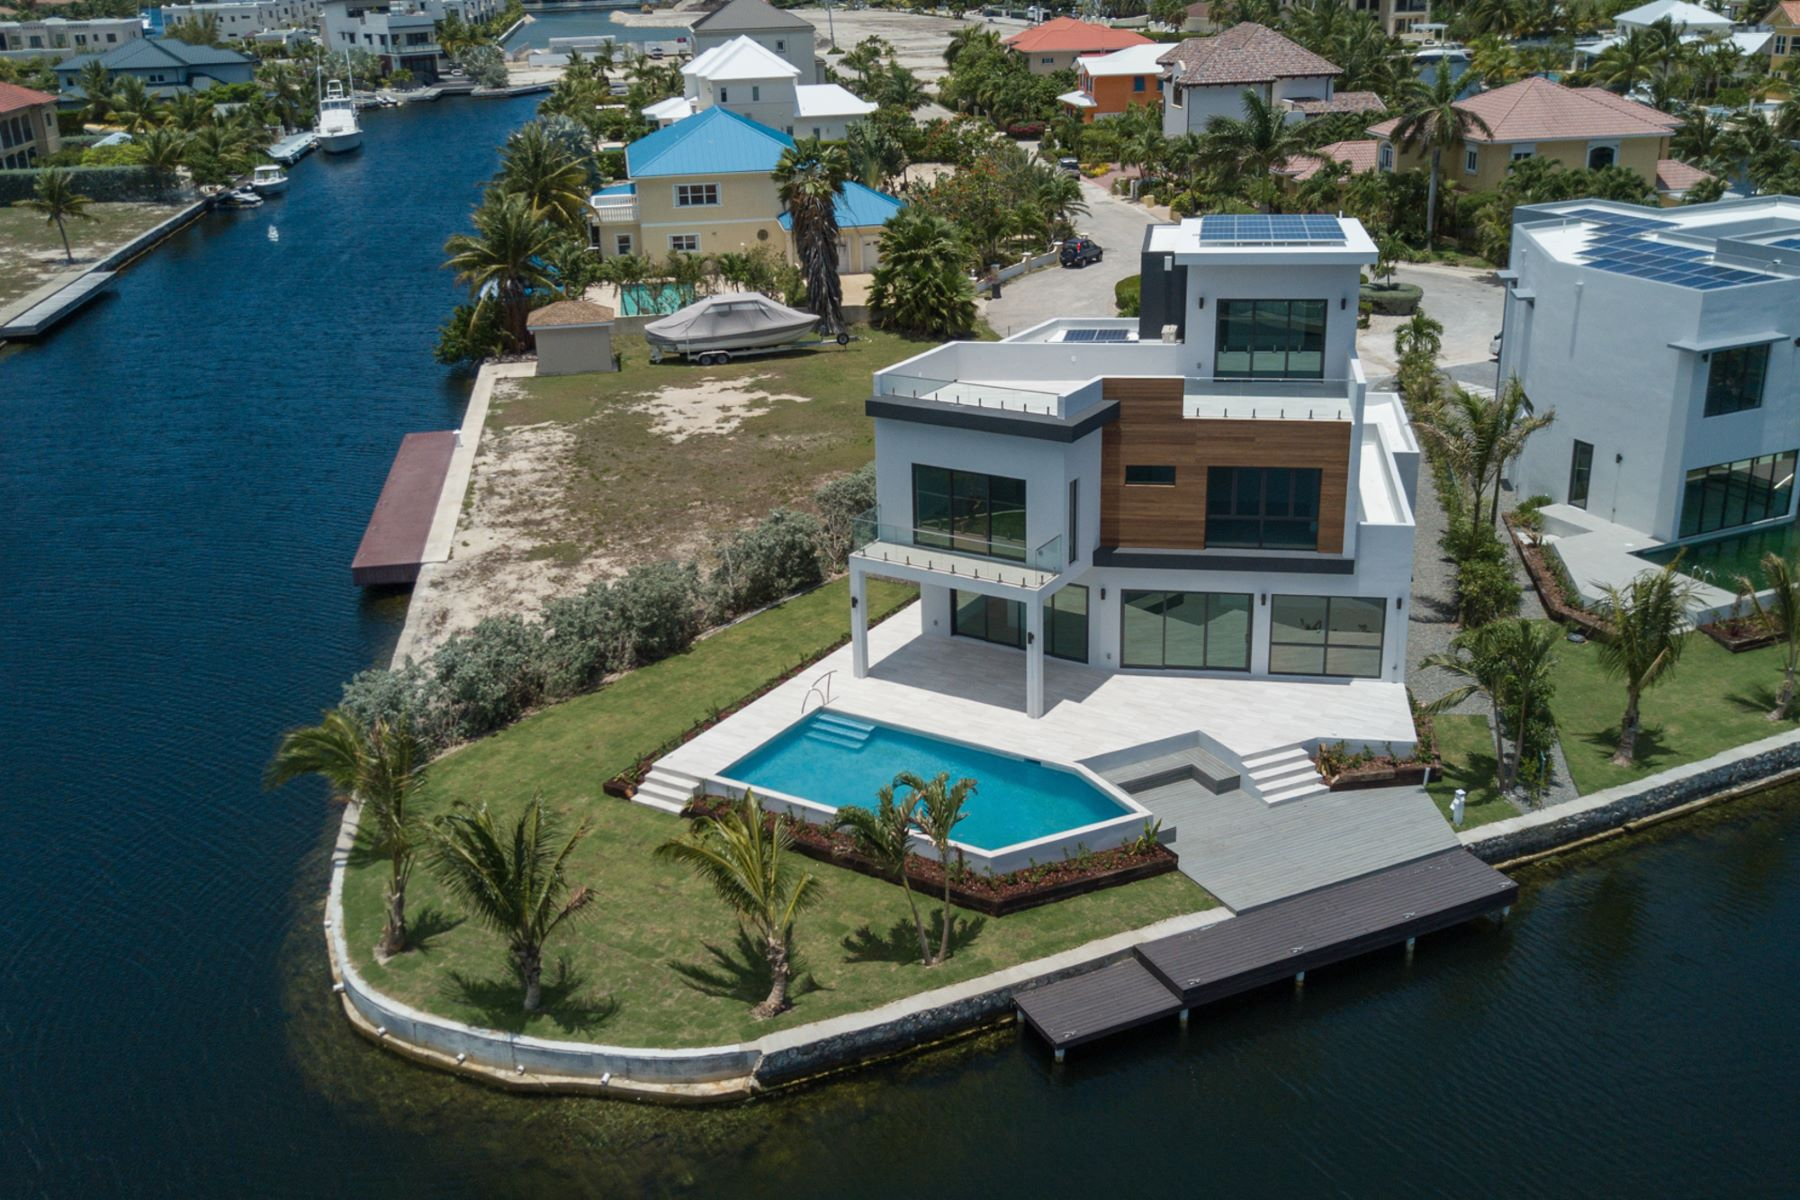 Single Family Home for Sale at HQ, Hoya Quay Contemporary Crystal Harbour Home Crystal Harbour, Cayman Islands